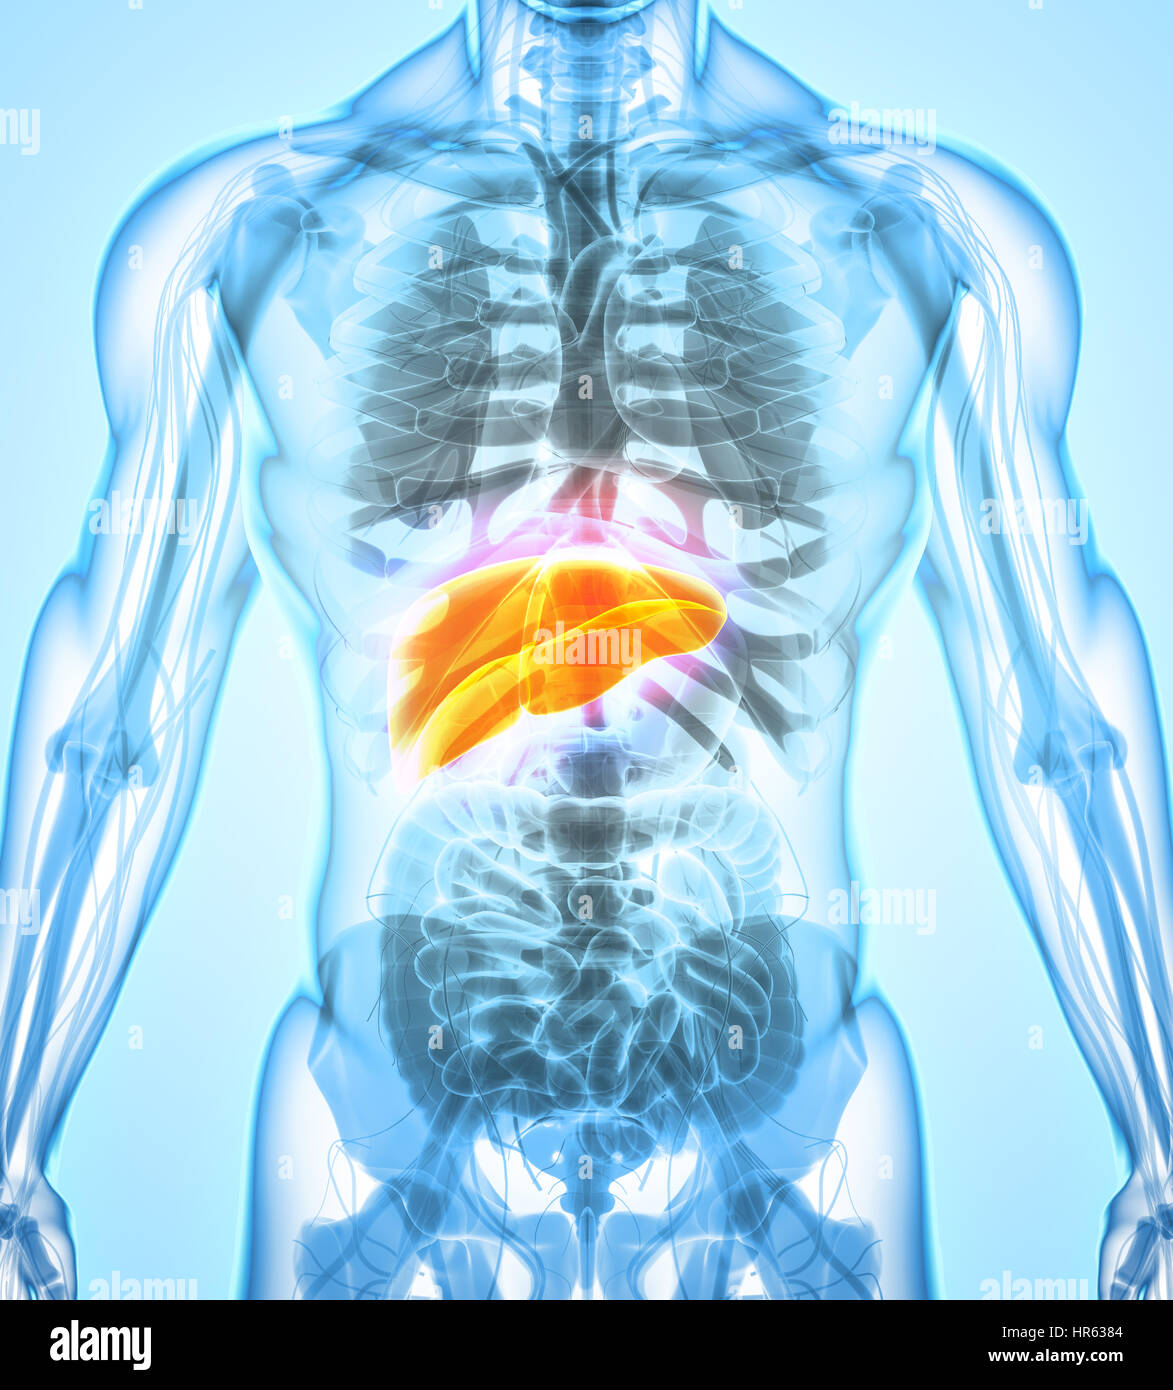 3D illustration of Liver - Part of Digestive System Stock Photo ...